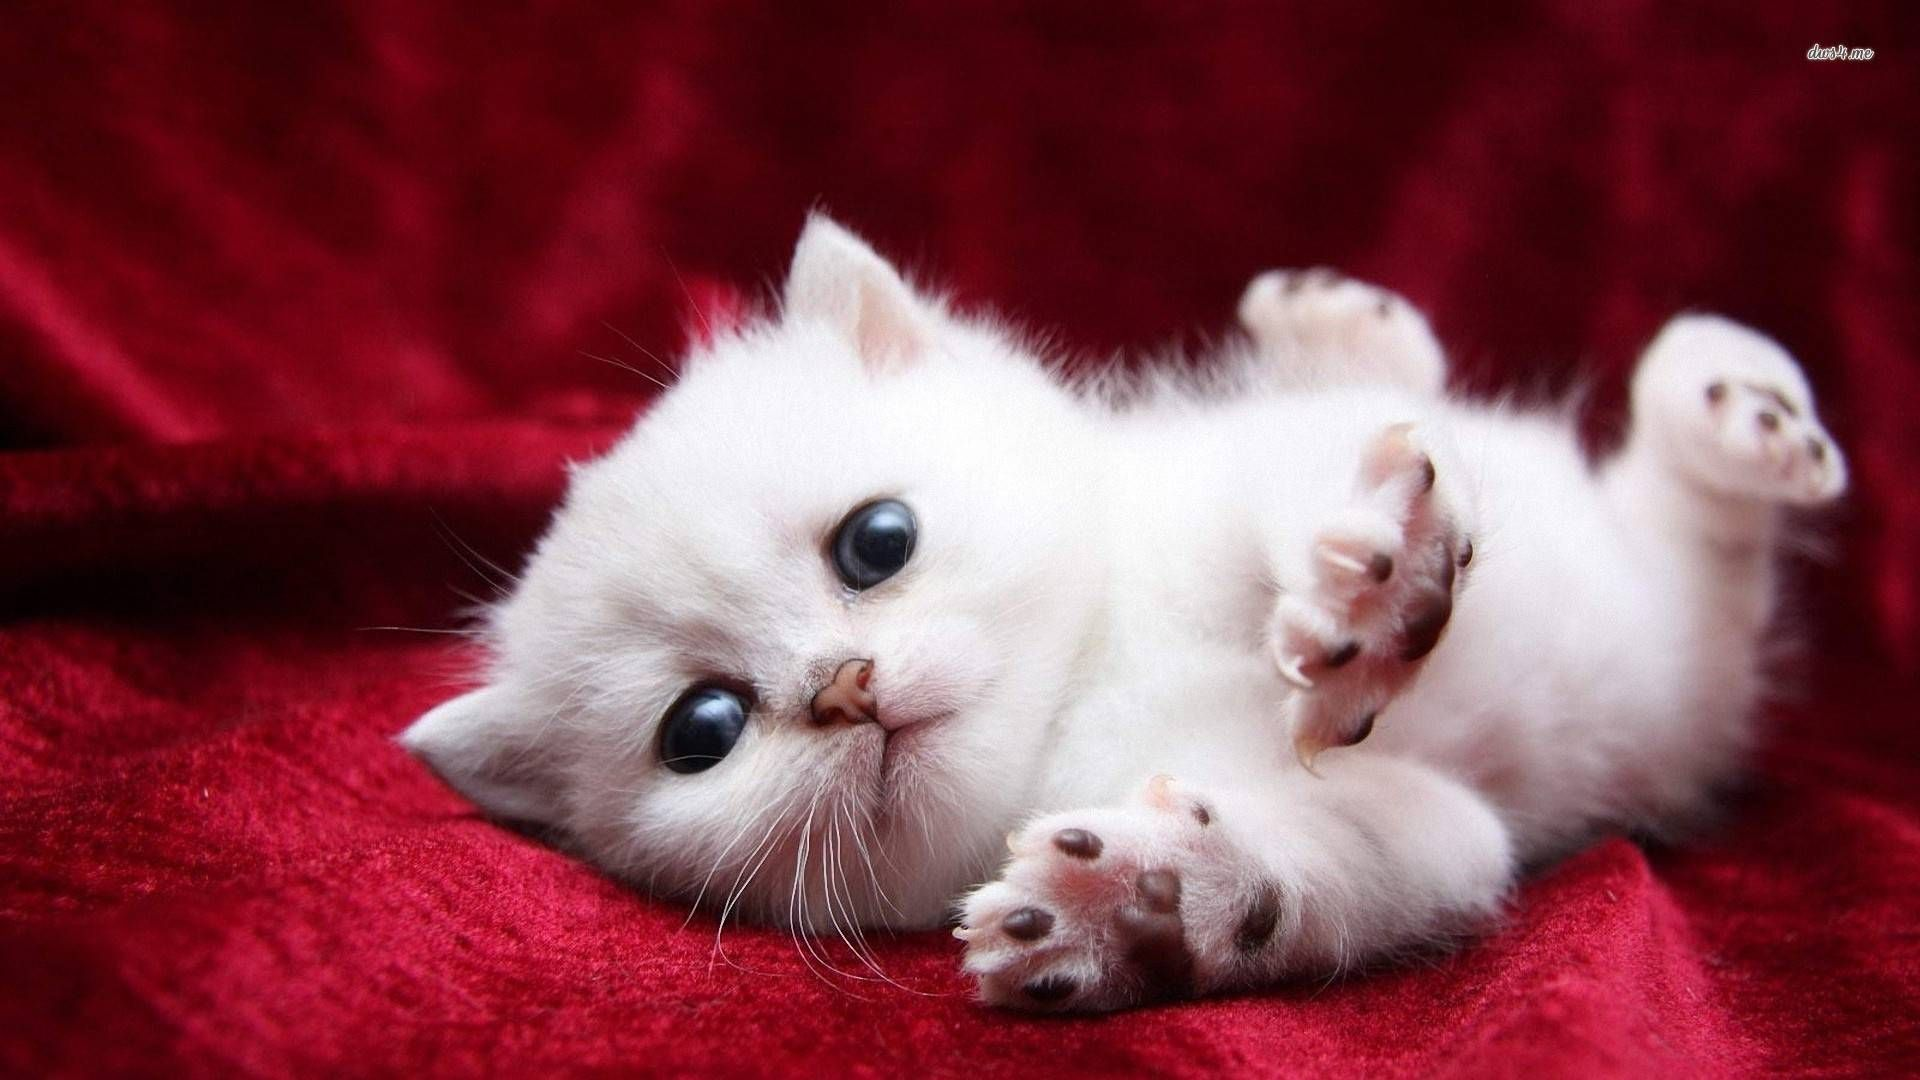 I Love This Kittens Cutest Kitten Wallpaper Cute Cats And